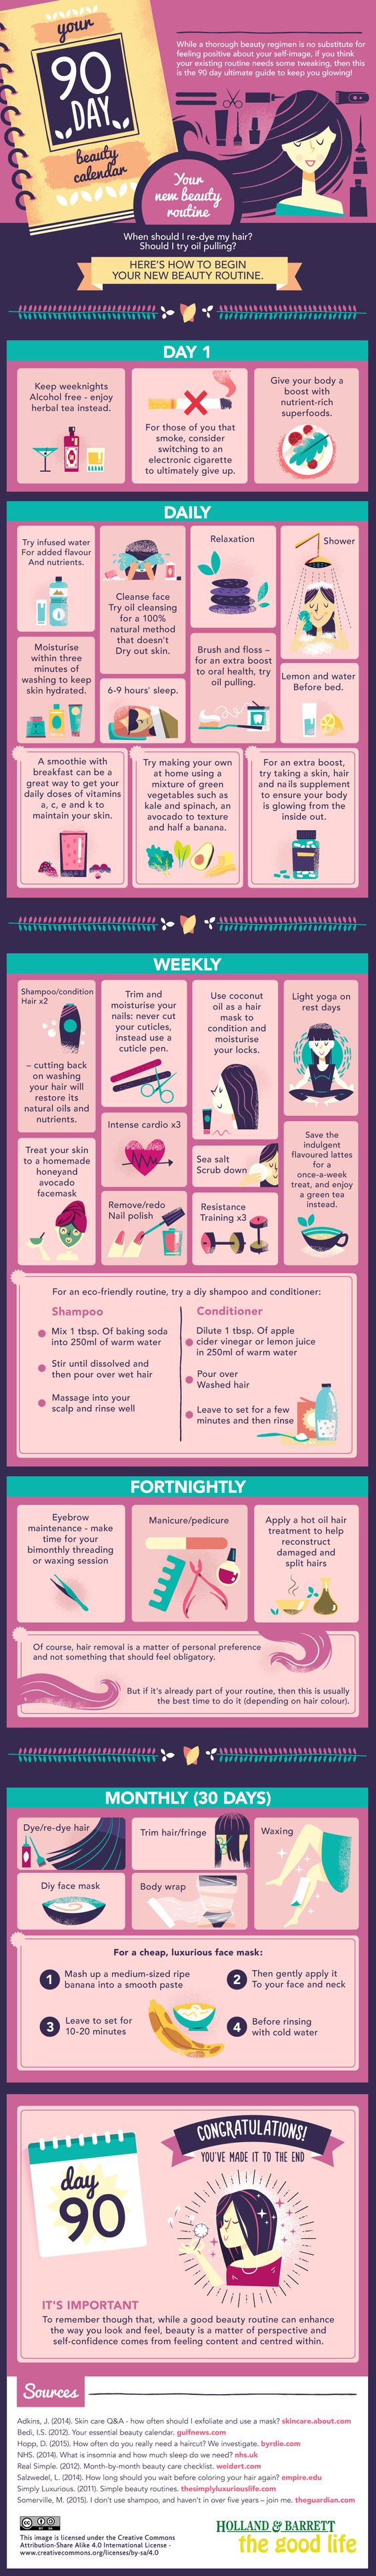 Holland and Barrett present a 90-day schedule to make sure you remain at your beautiful best in a completely healthy way—all in a wonderful infographic.: